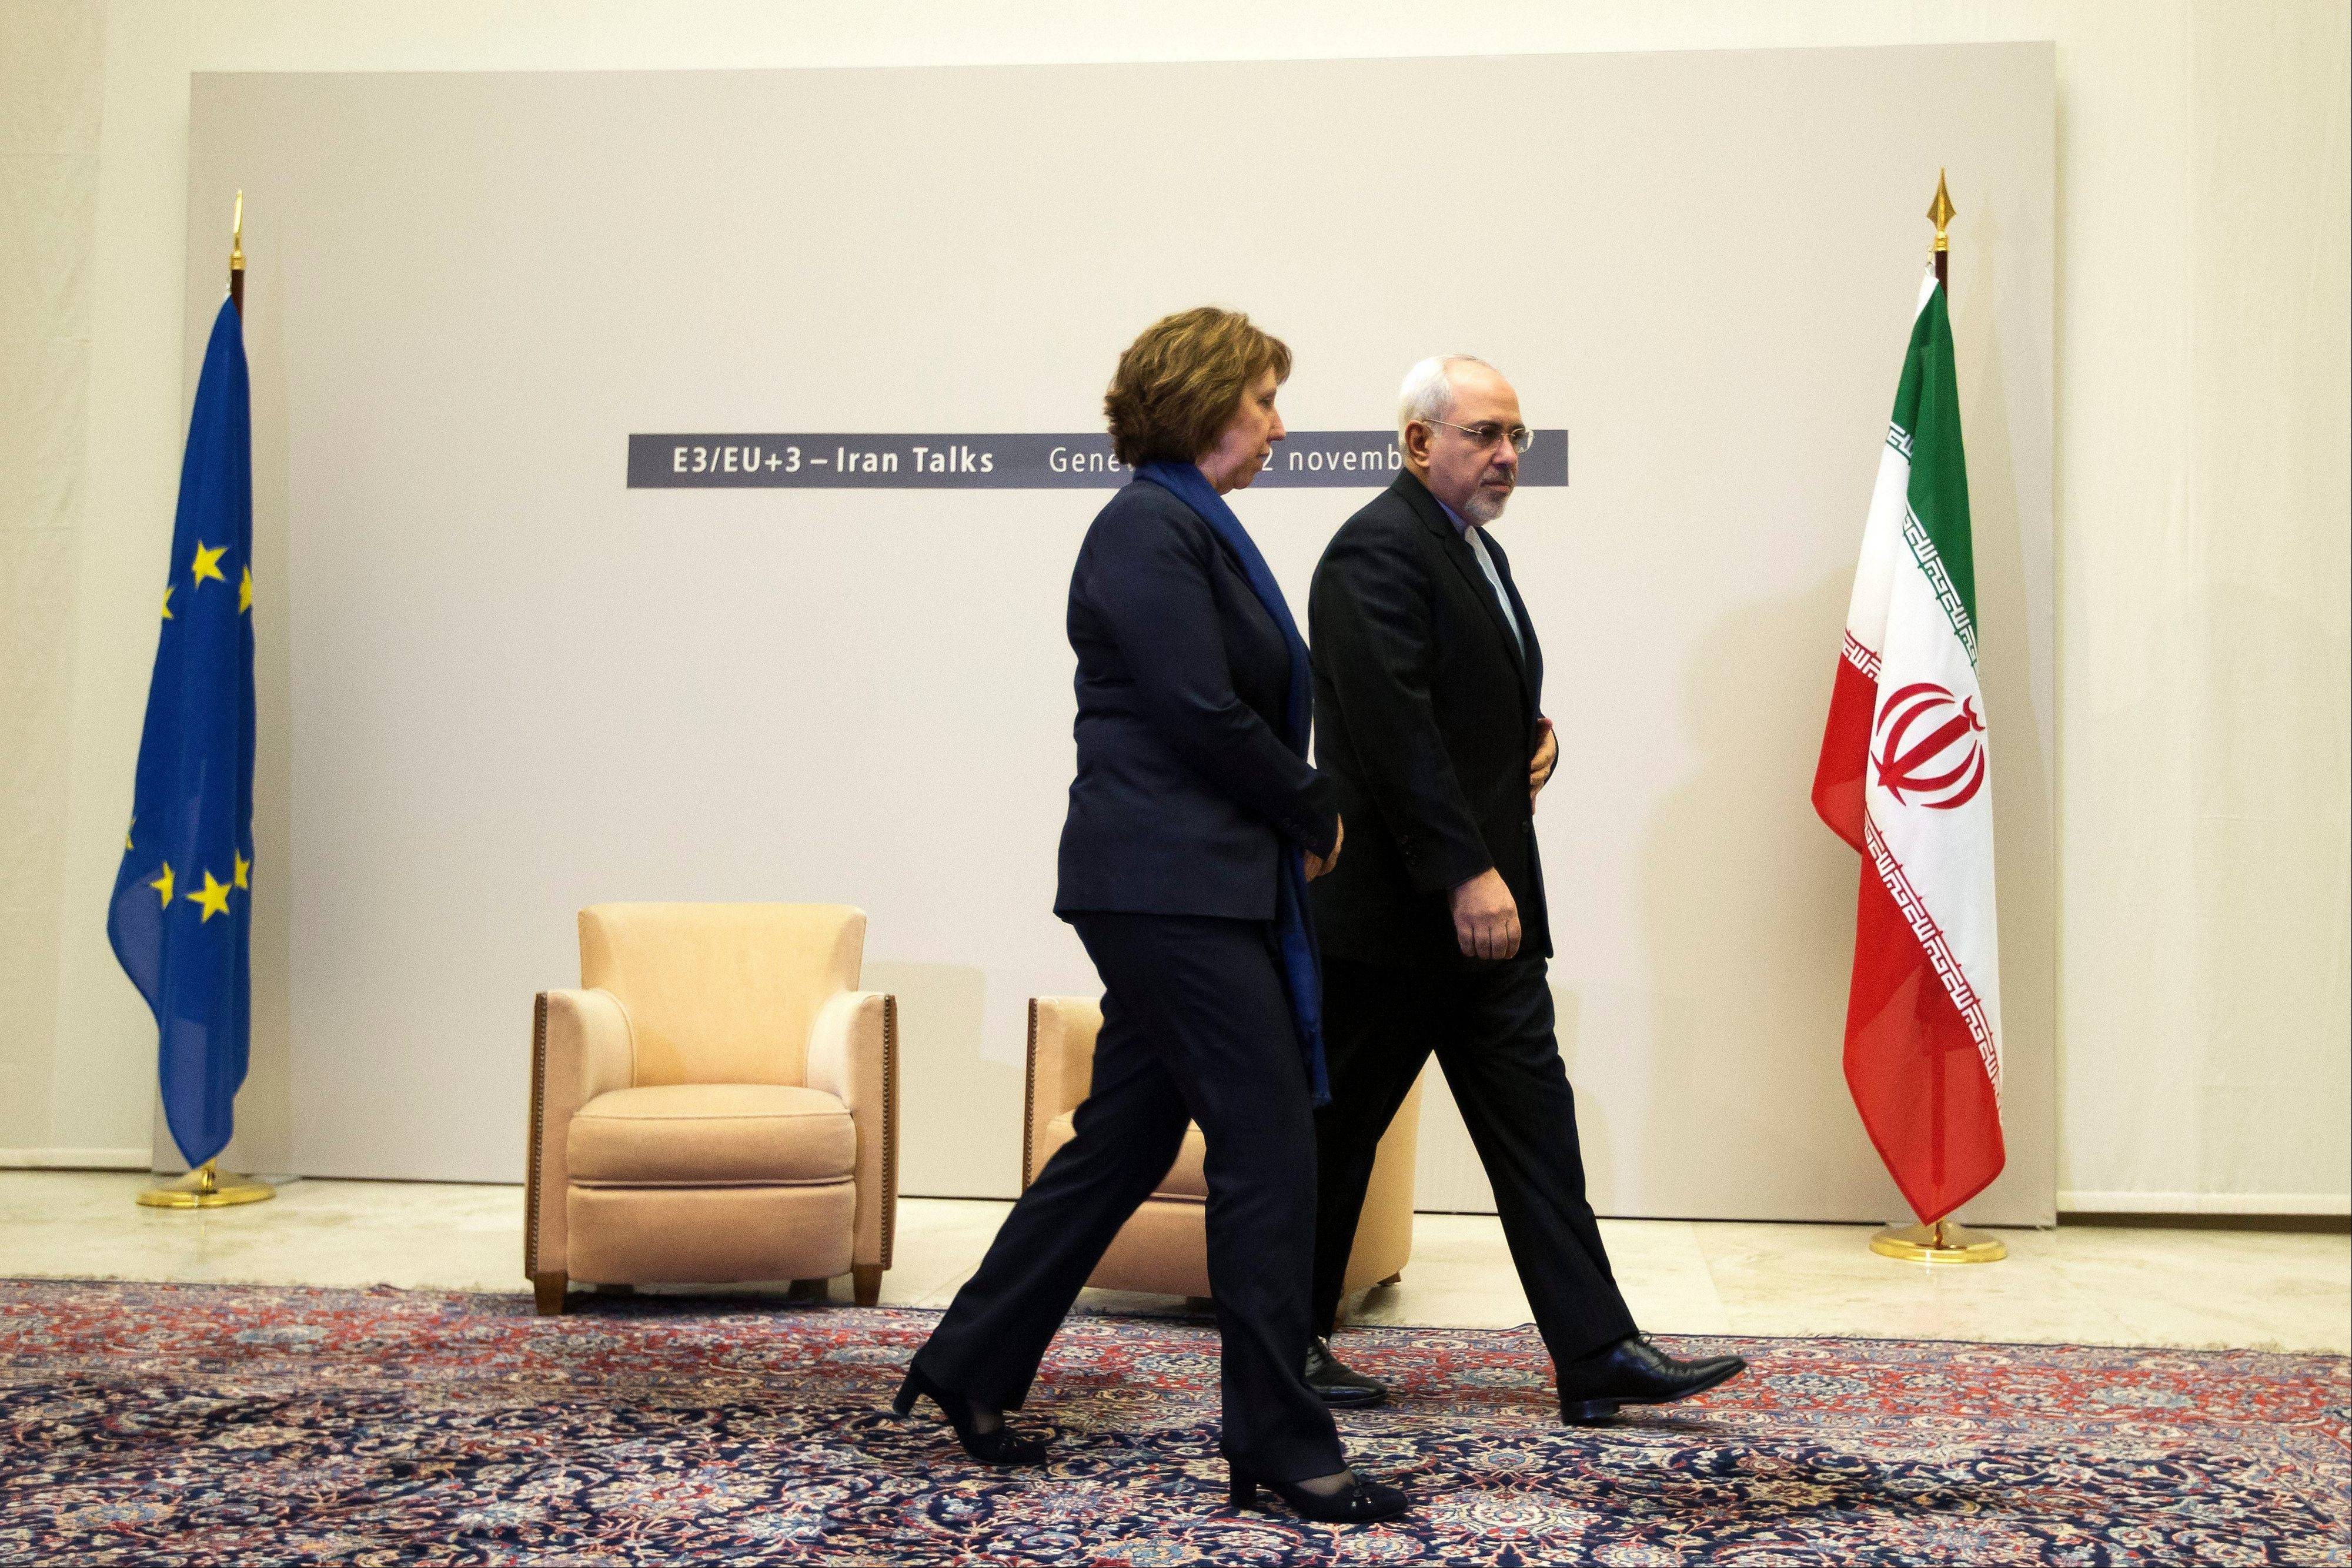 EU High Representative for Foreign Affairs Catherine Ashton, left, and Iranian Foreign Minister Mohammad Javad Zarif leave a photo opportunity Wednesday prior to the start of three days of closed-door nuclear talks in Geneva, Switzerland.